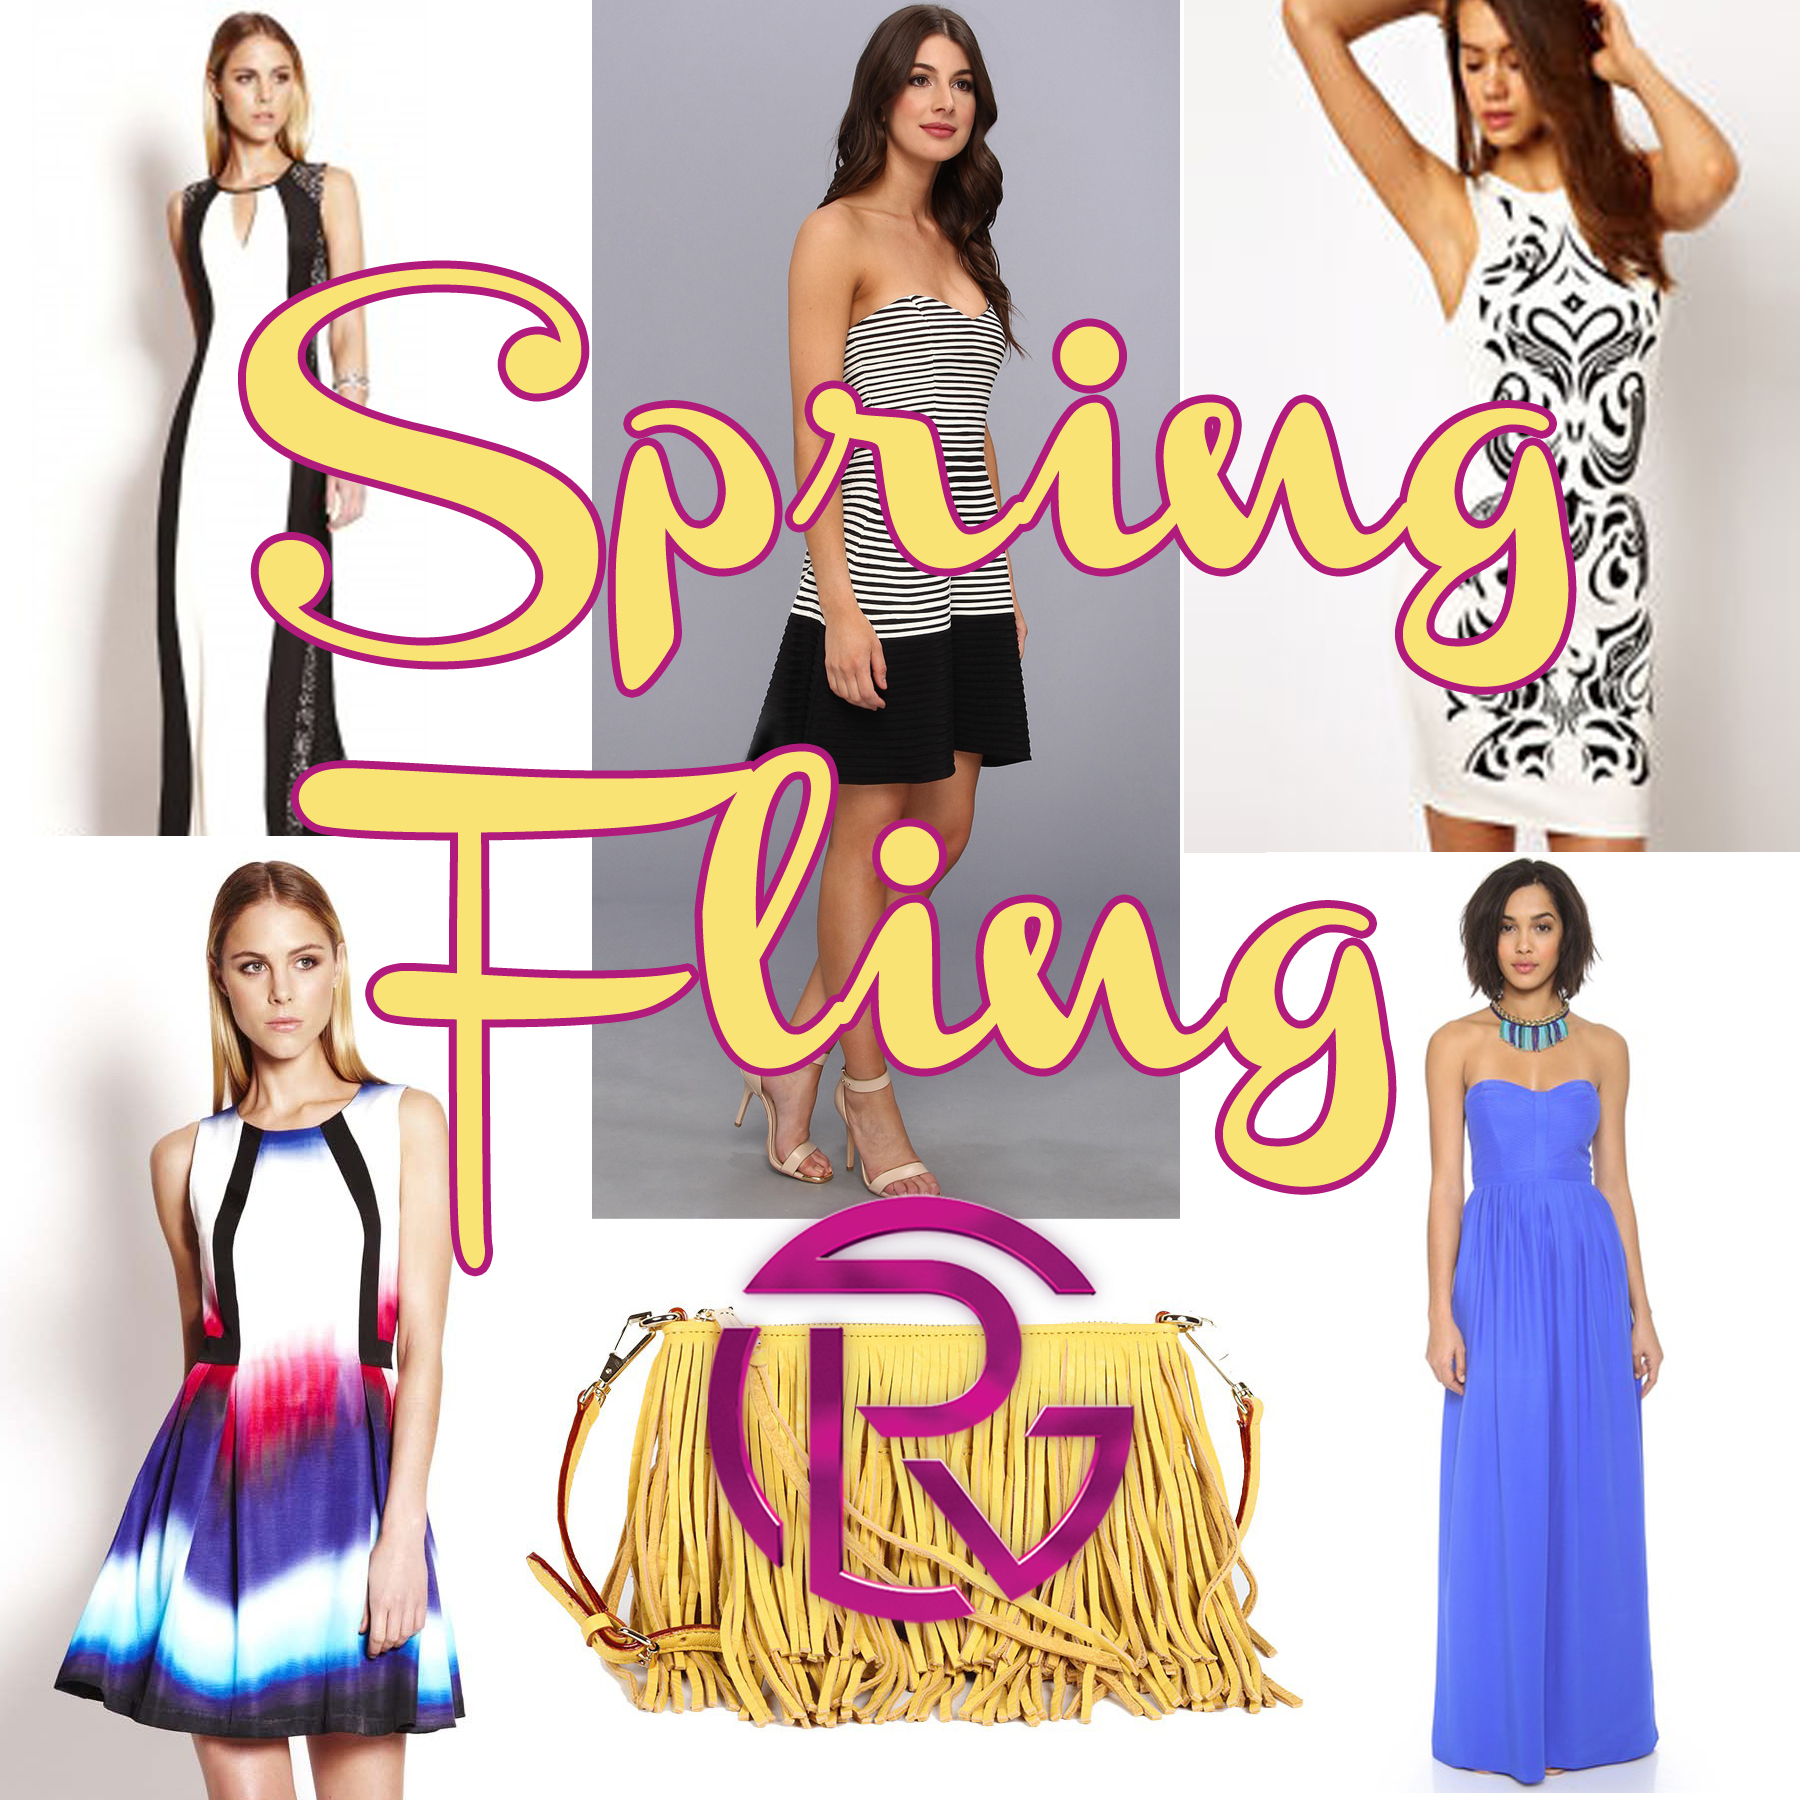 PLRG has your #SpringFling covered!!!